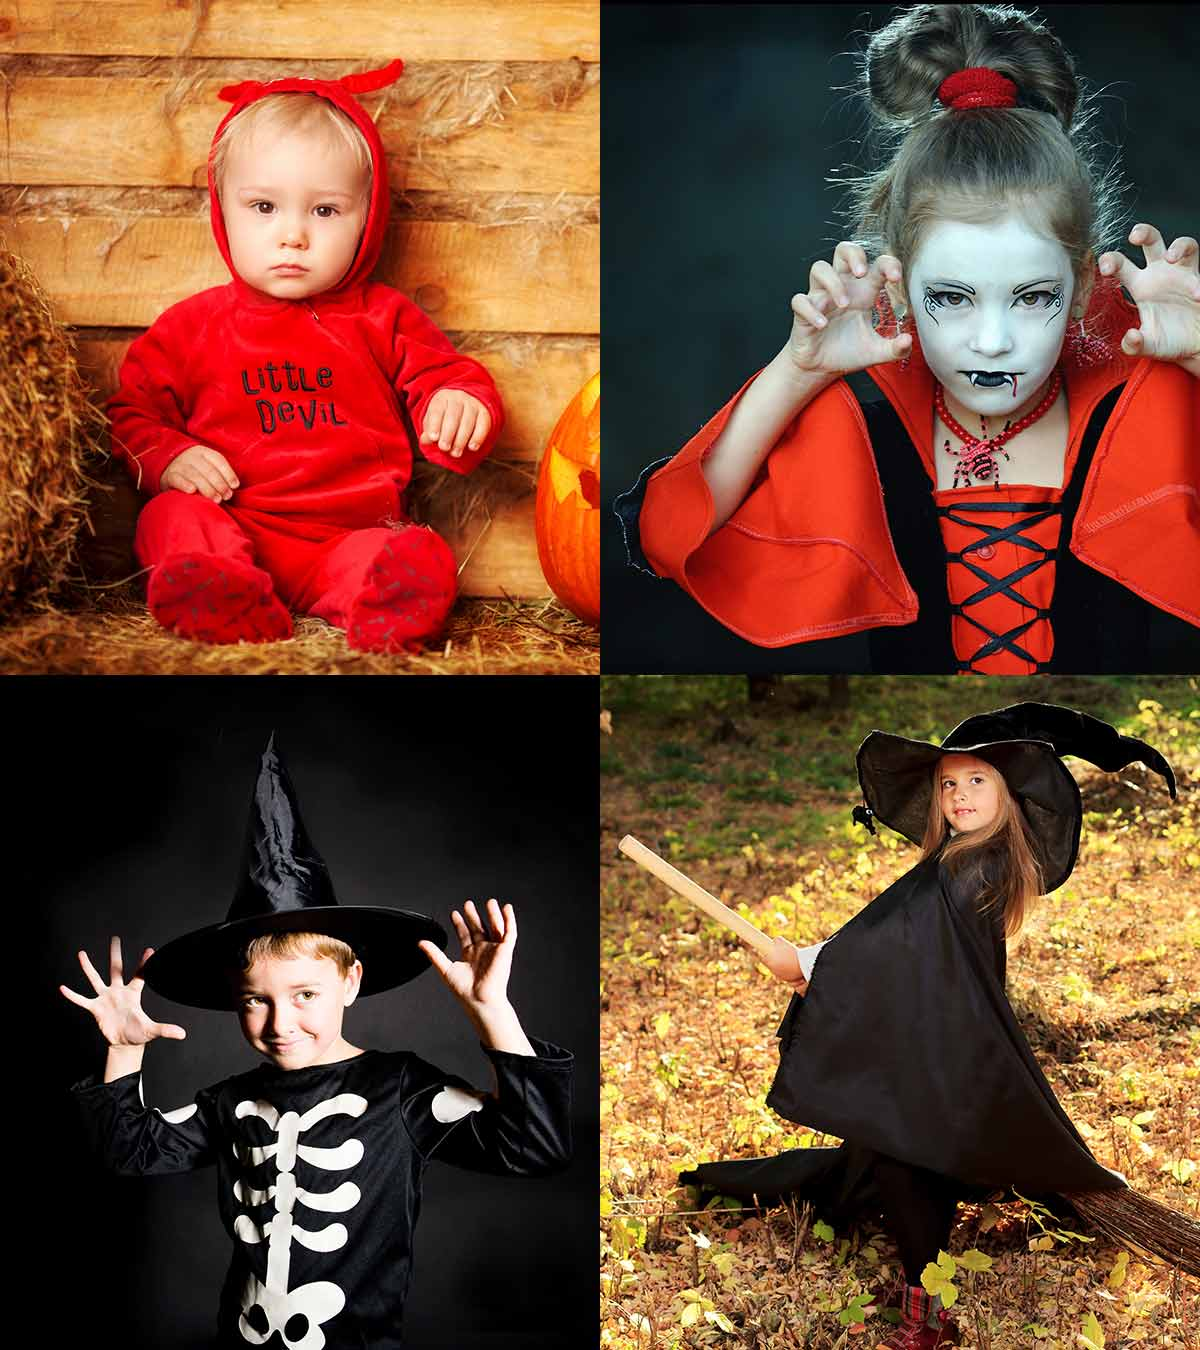 Halloween Costumes For Kids Scary.31 Scary Halloween Costumes For Kids And Tweens